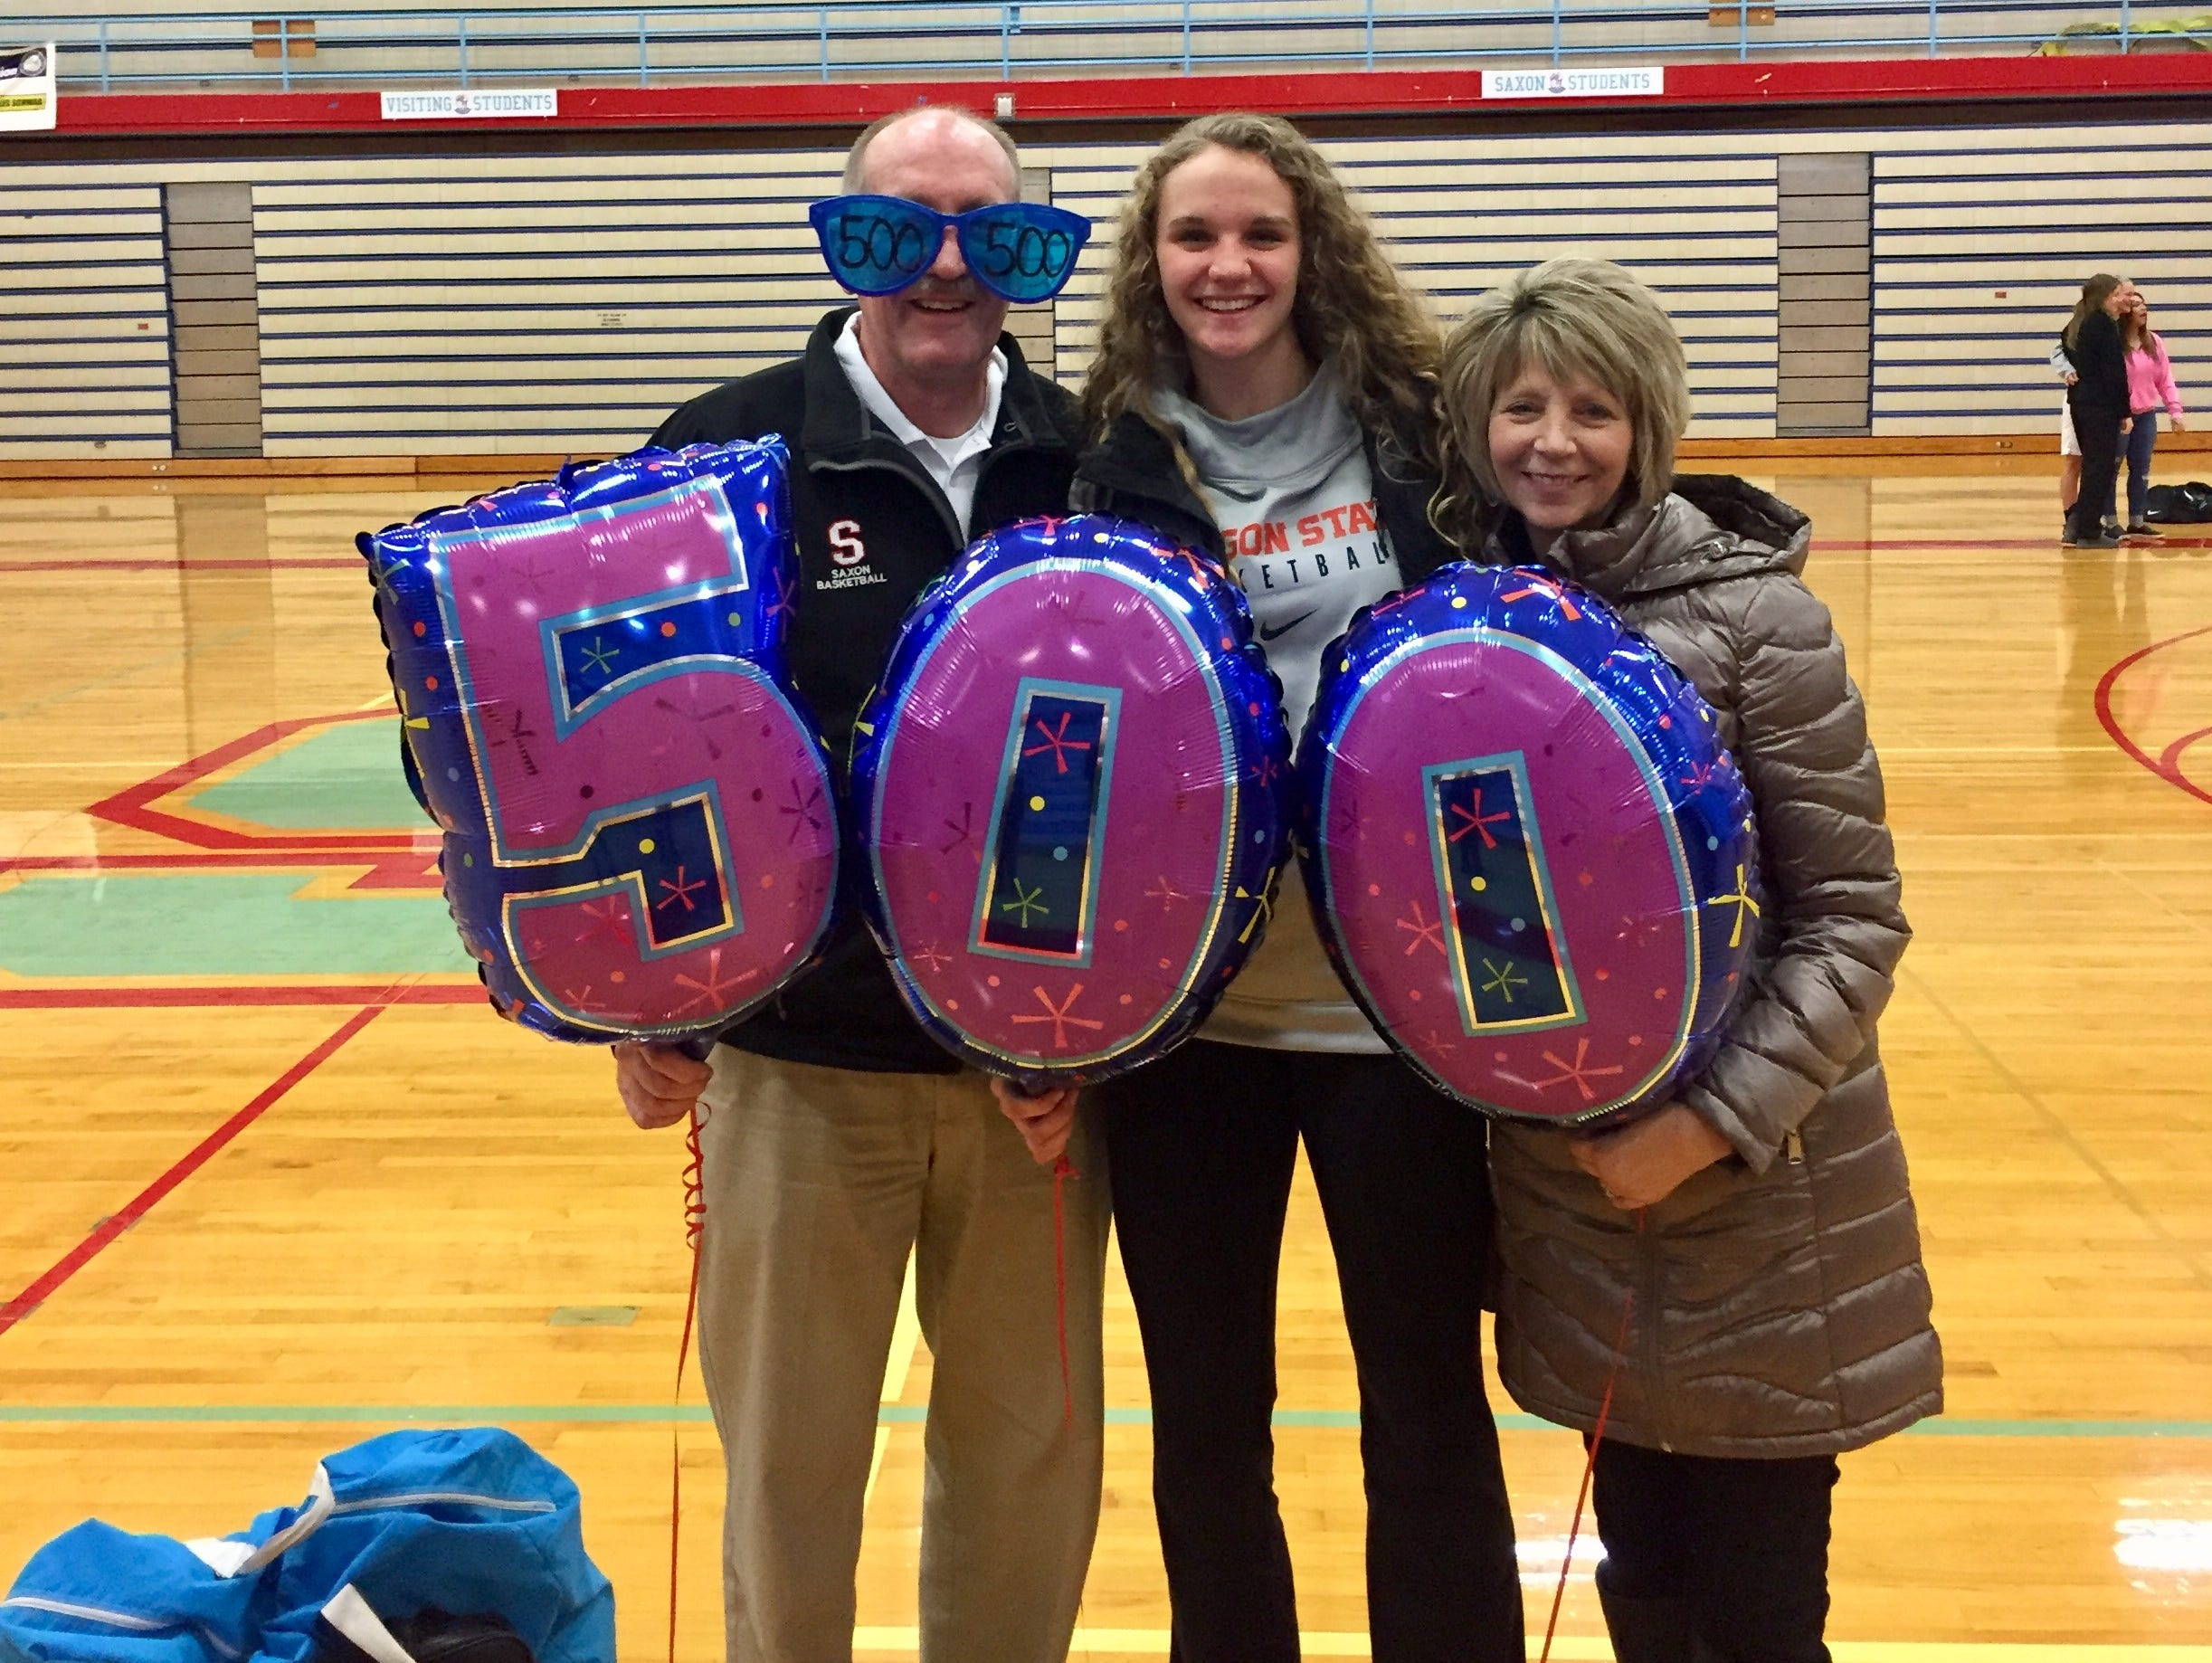 South Salem girls basketball coach Nick McWilliams (left) poses with daughter Katie (middle) and wife Diane after he won his 500th game as a head coach.